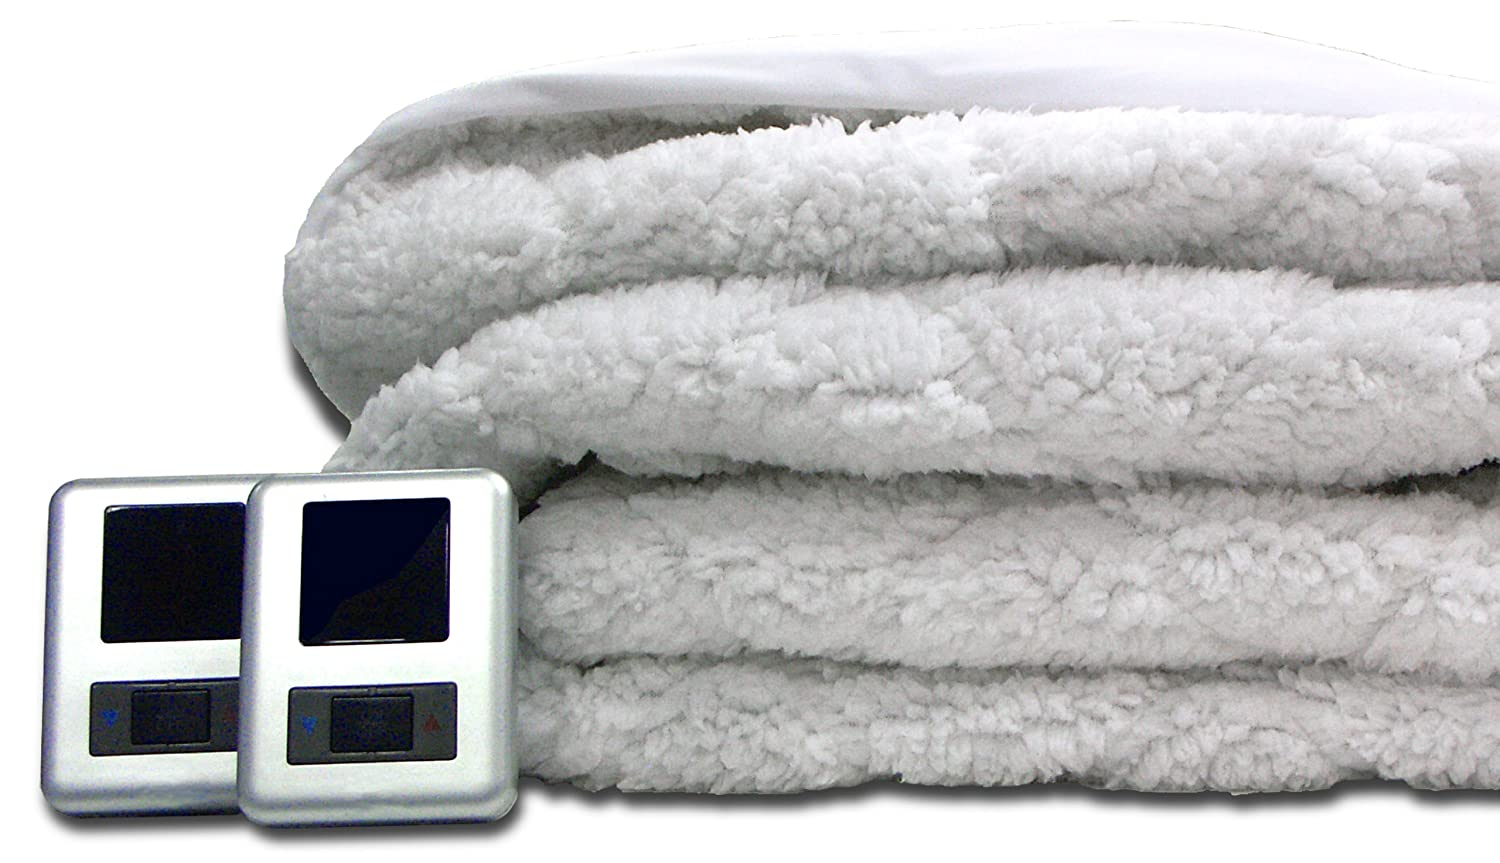 Amazon.com: Biddeford 5302-9051128-100 Sherpa Quilted Skirt Electric Heated  Mattress Pad, Queen, White: Home & Kitchen